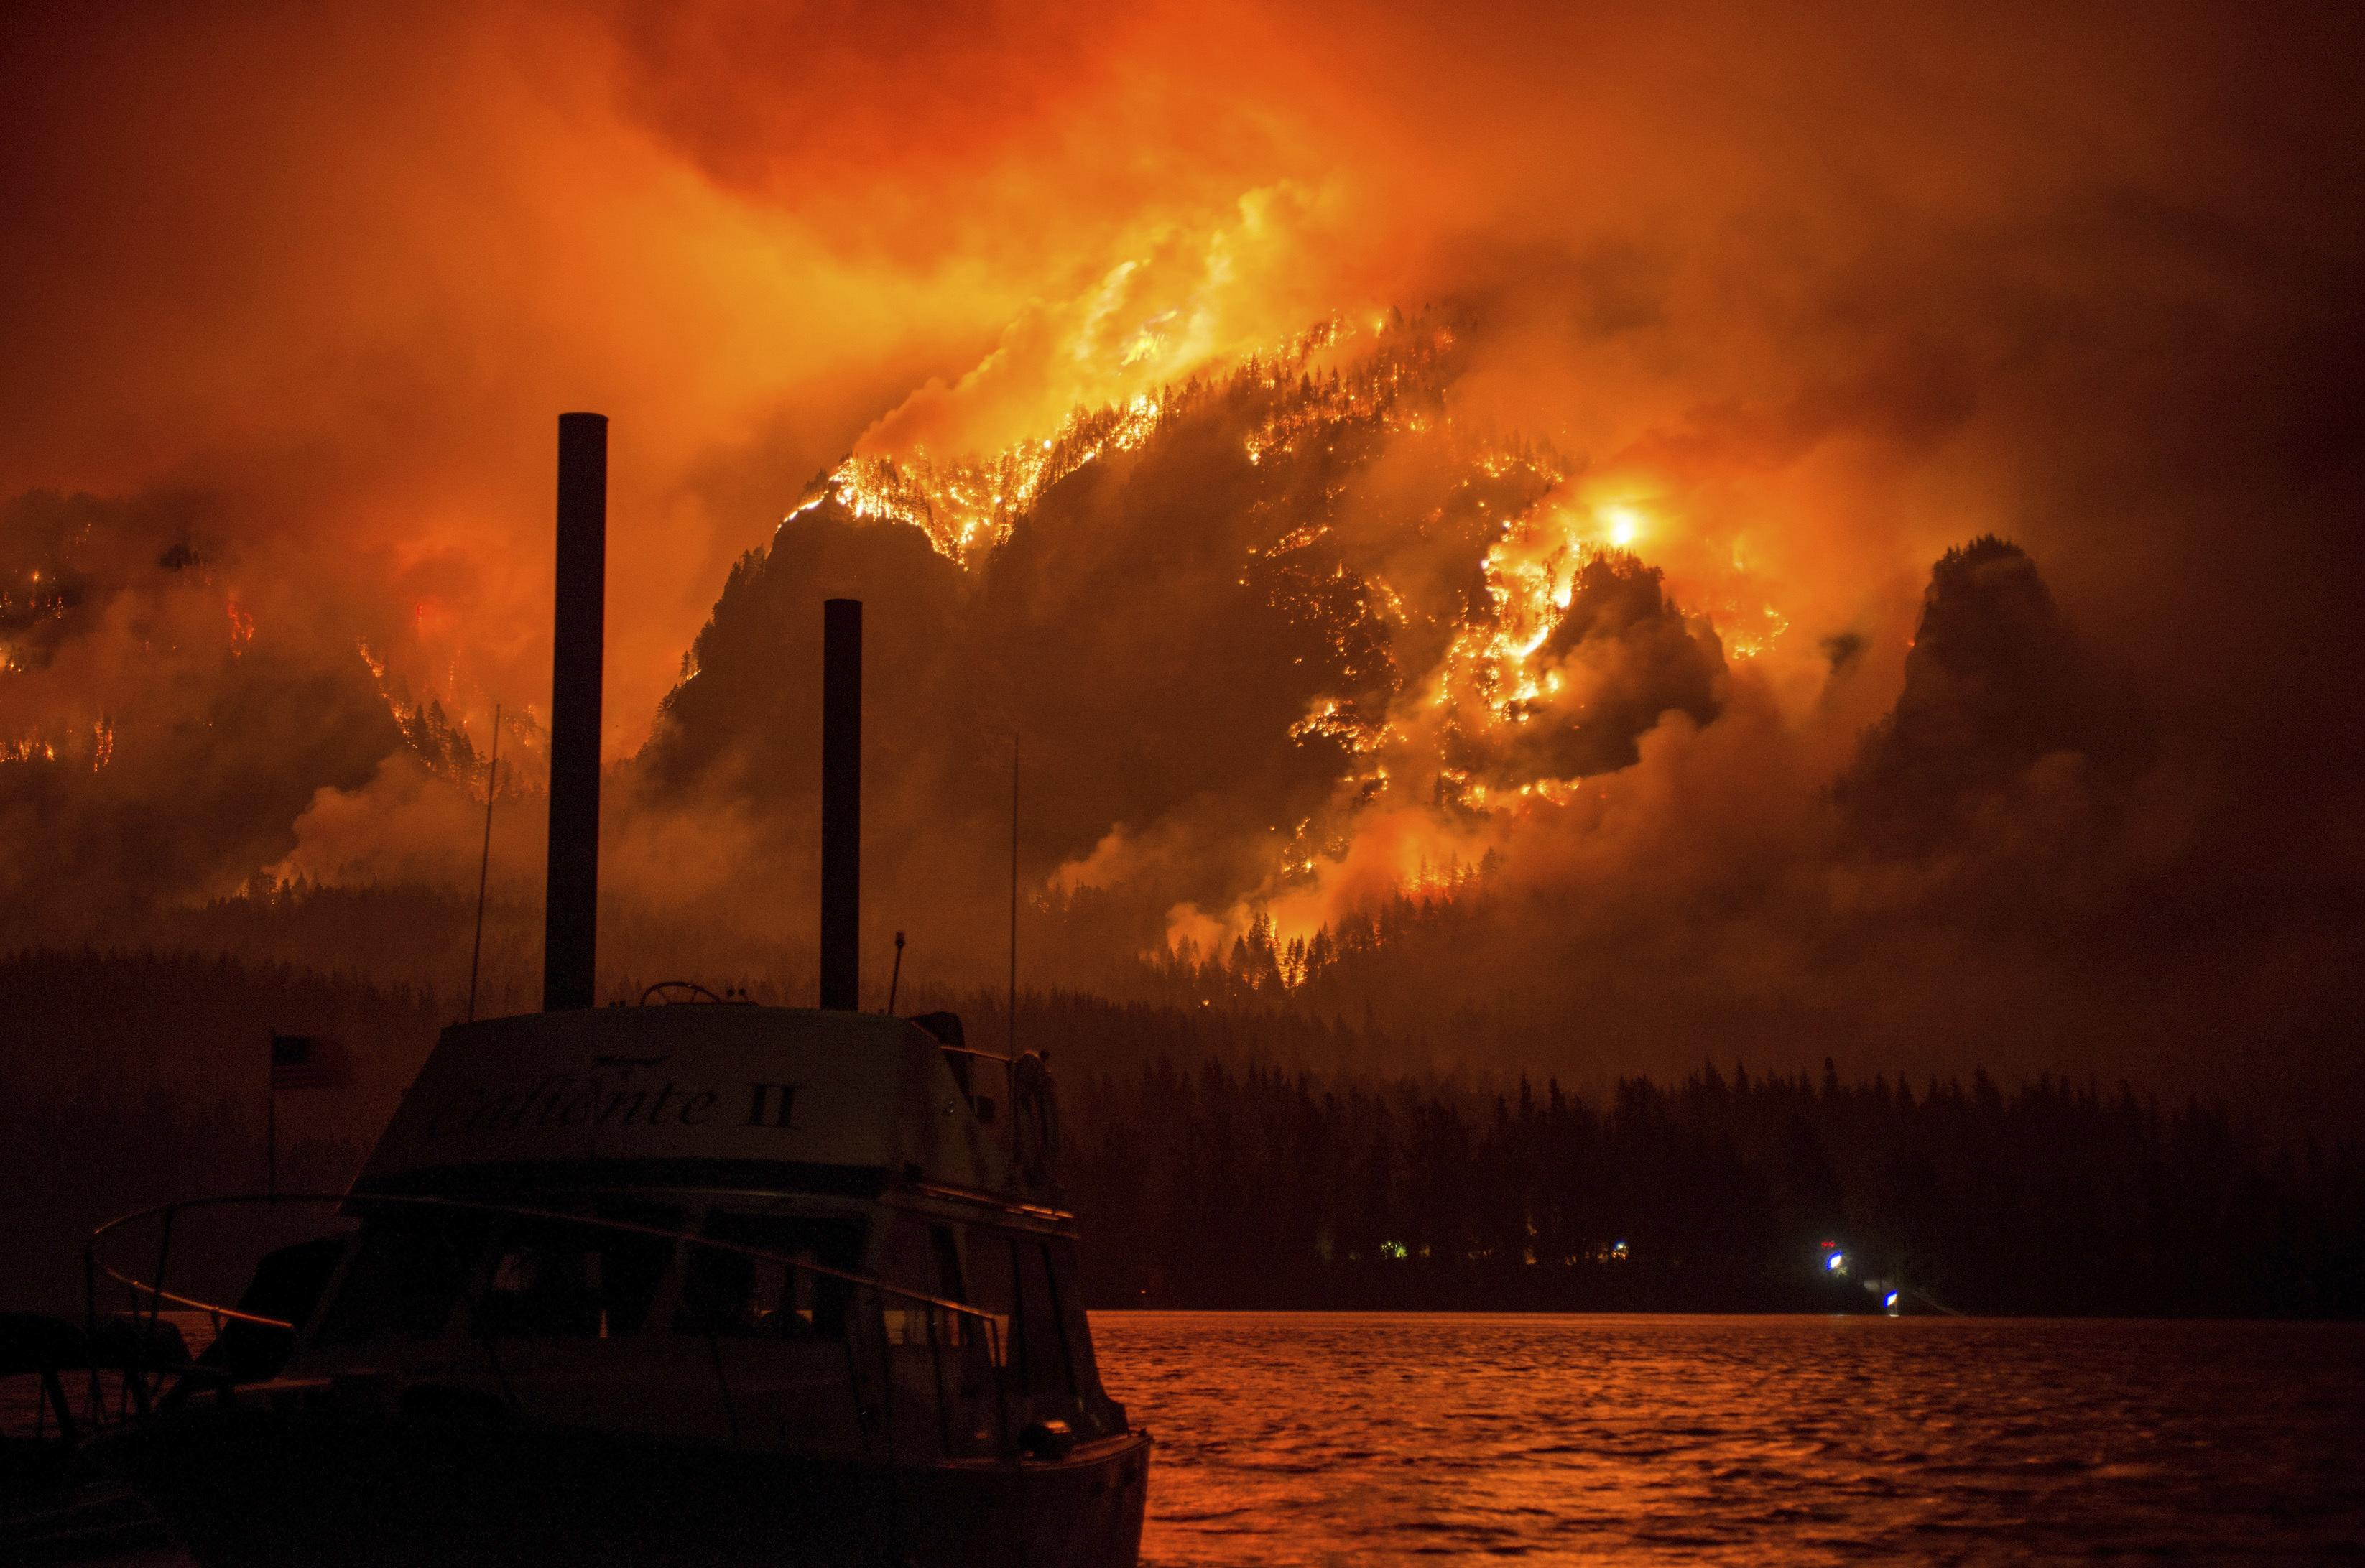 Fire or volcano? Oregon blaze sparks eruption comparisons | The